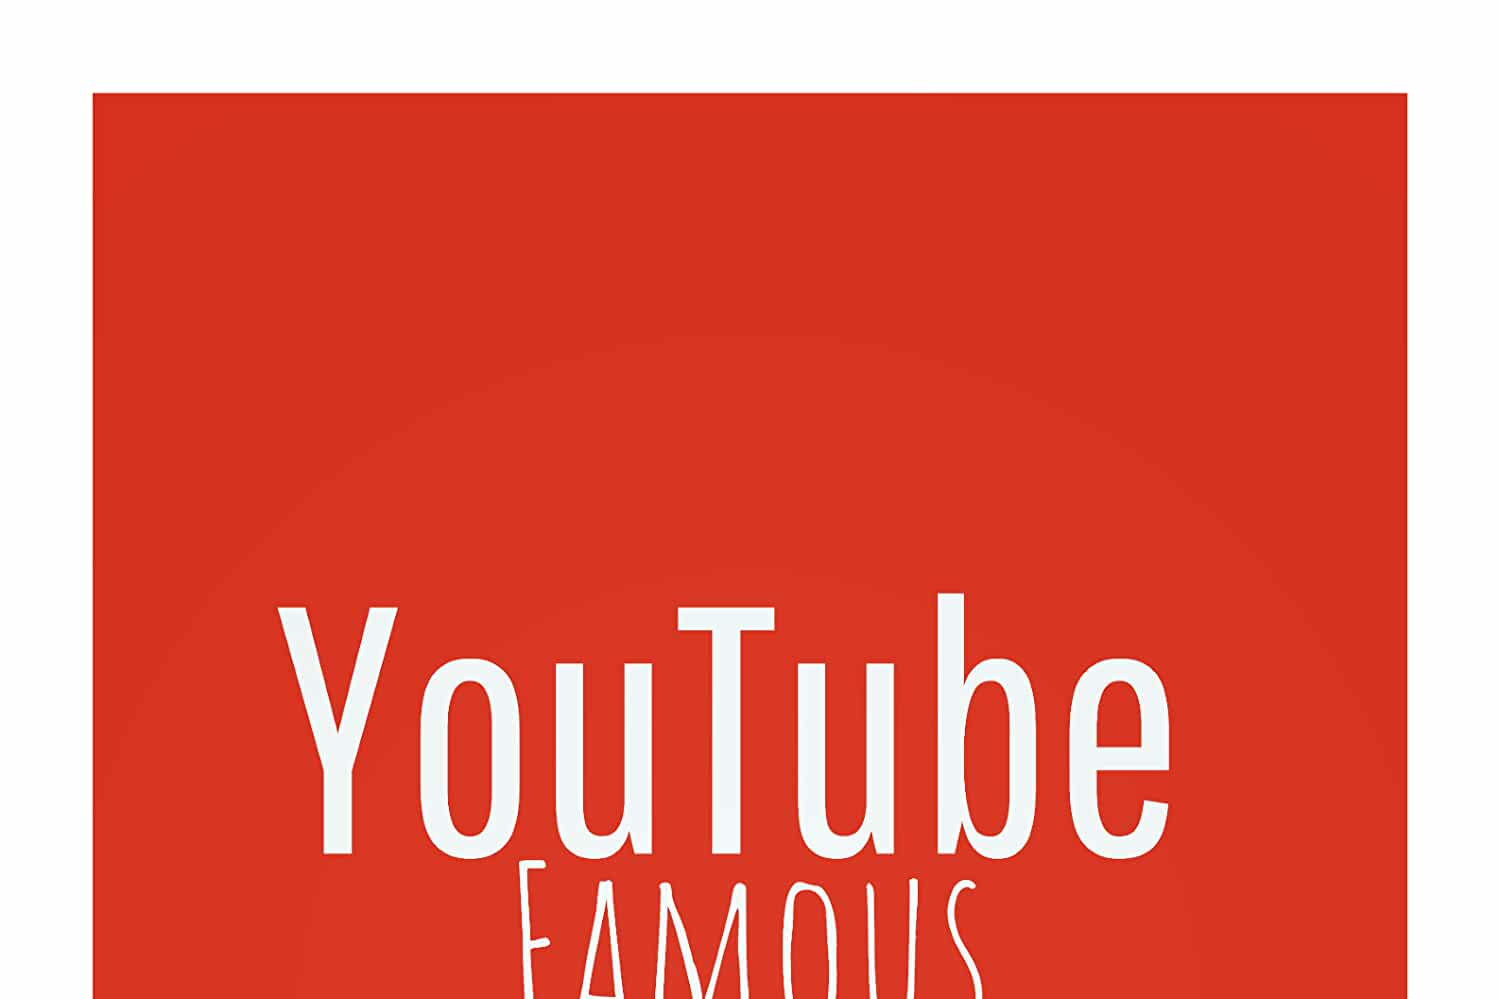 YouTube Famous (2019)